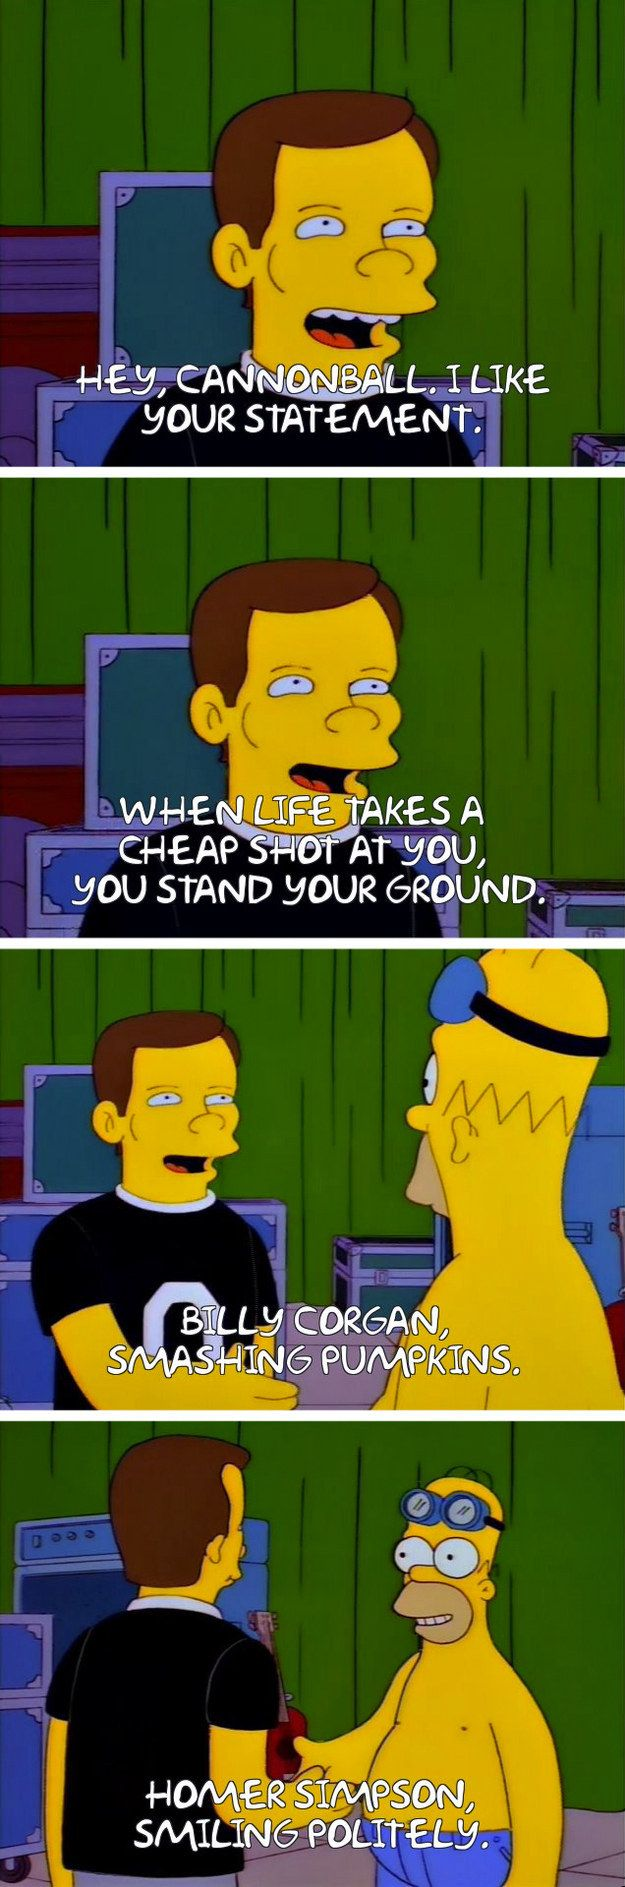 """From """"Homerpalooza"""": 